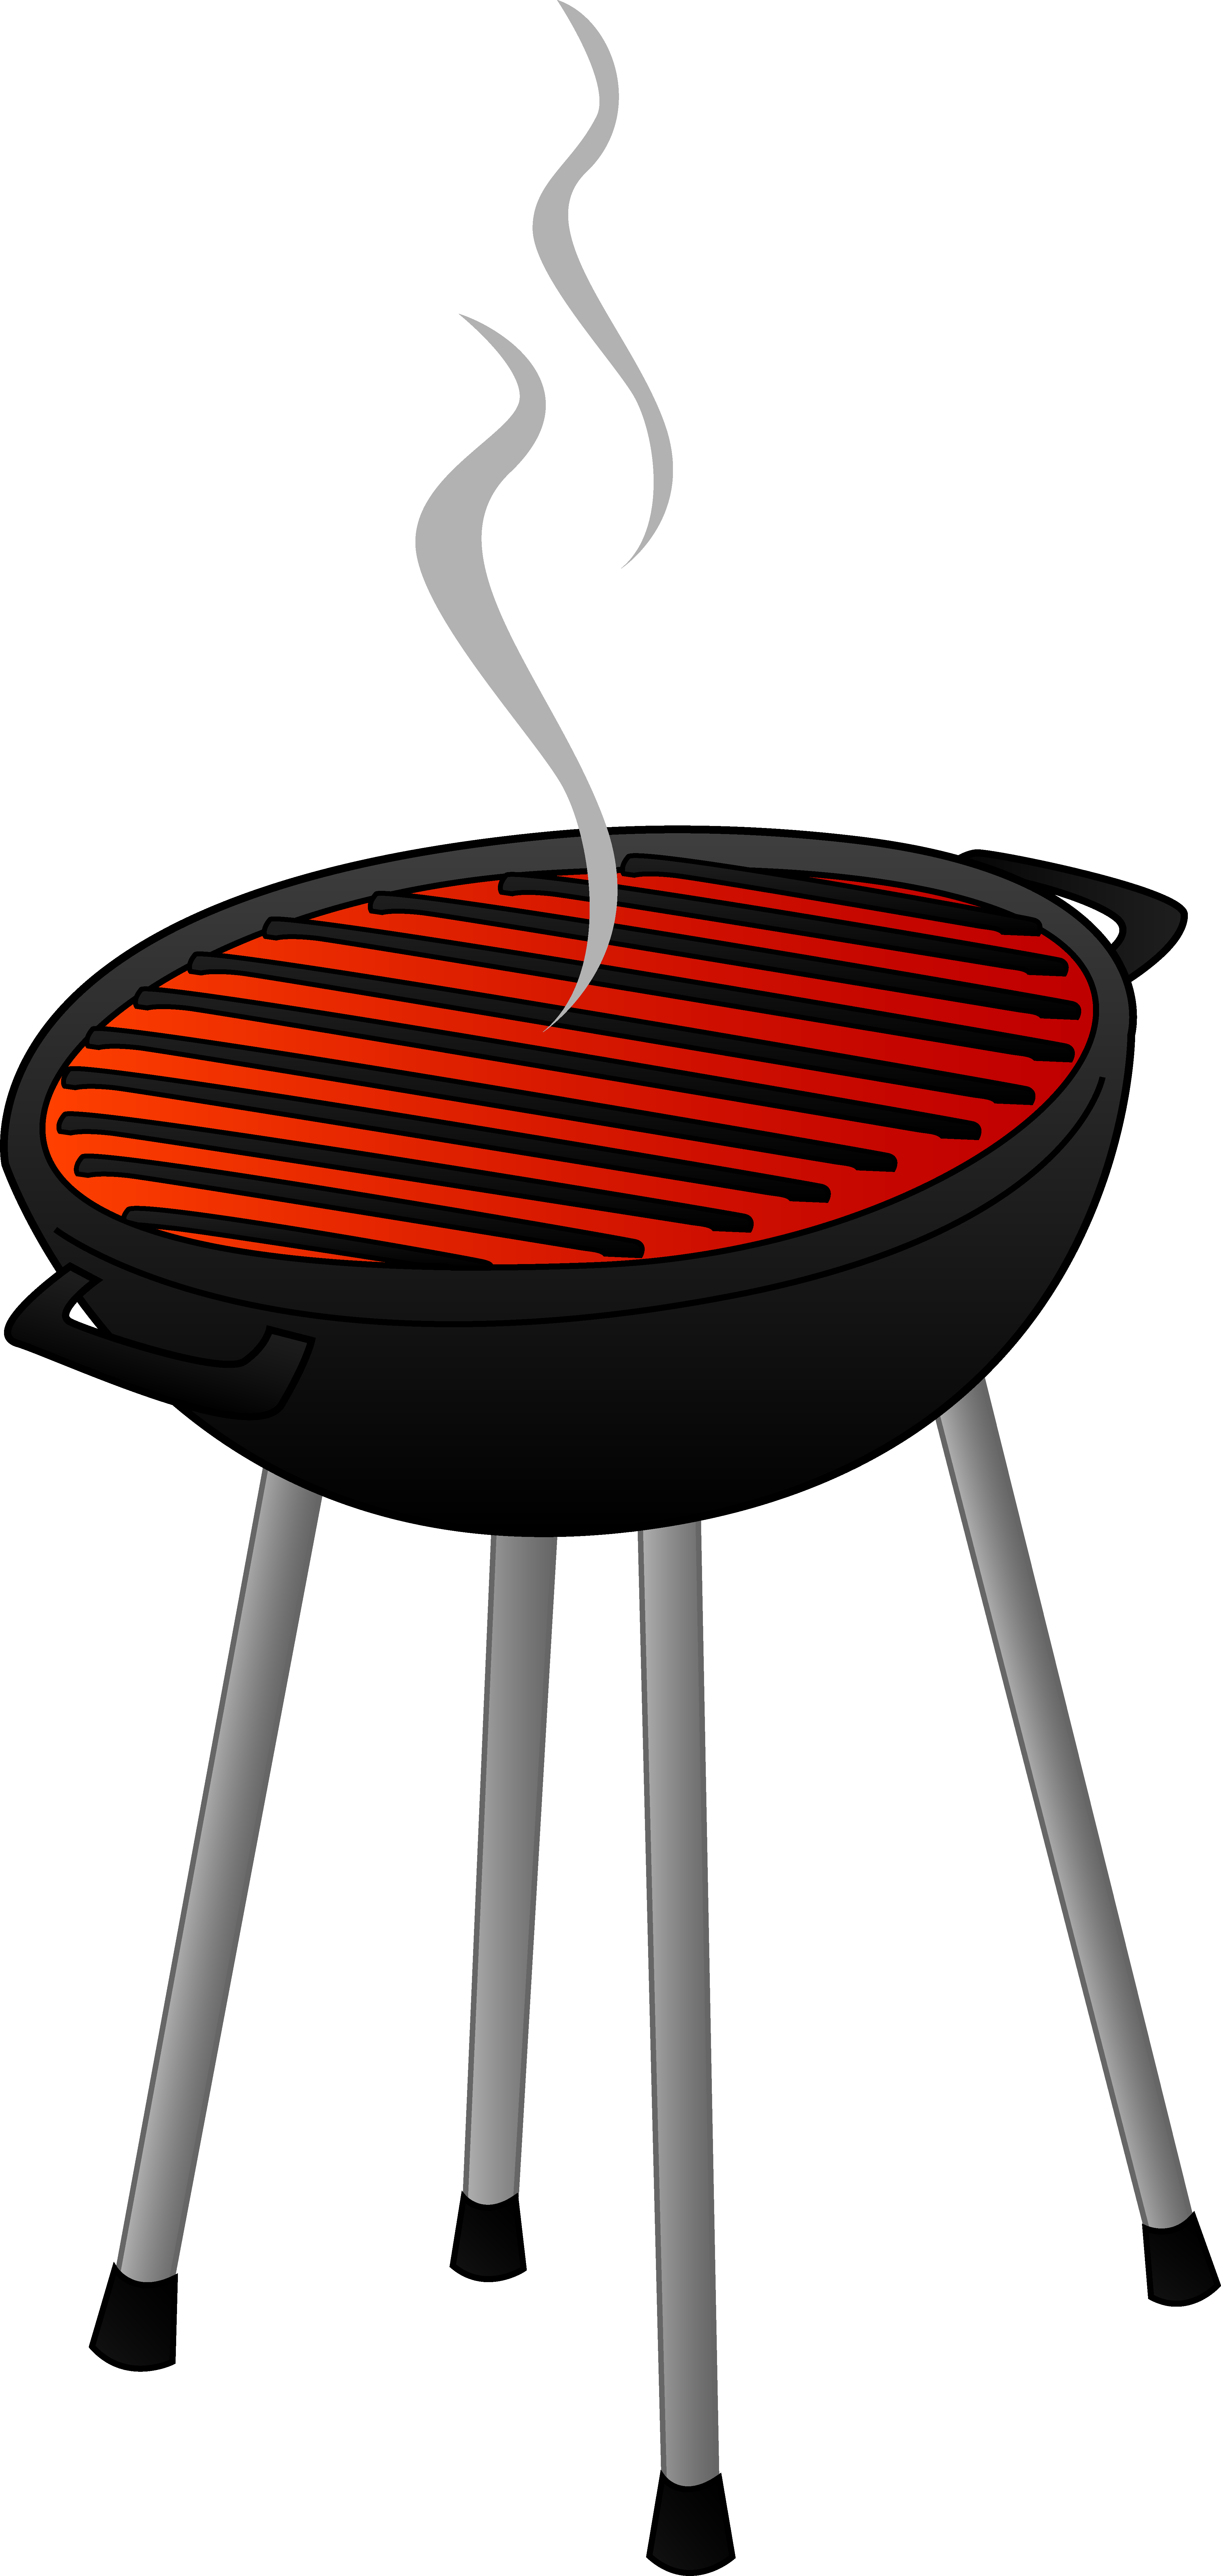 Free PNG Grill Transparent Grill